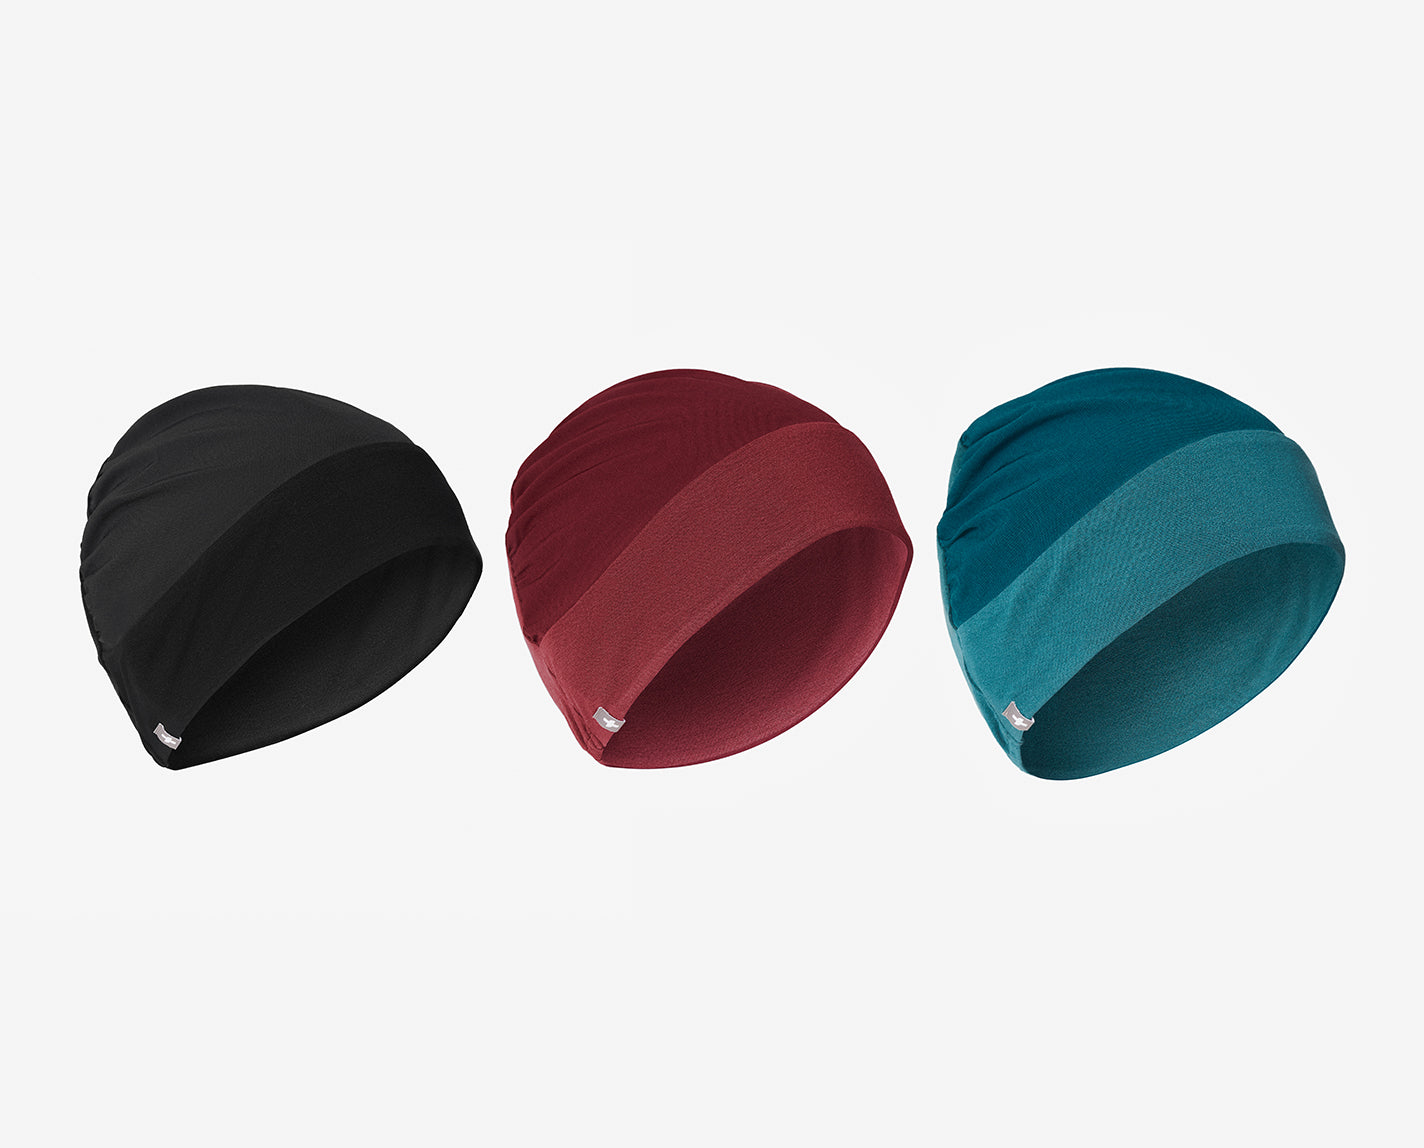 Our Modern Expandable Scrub Caps are 100% Awesome. Classic cap design with modern technology and are breathable, sustainable and features our SuperSoft fabric lining.